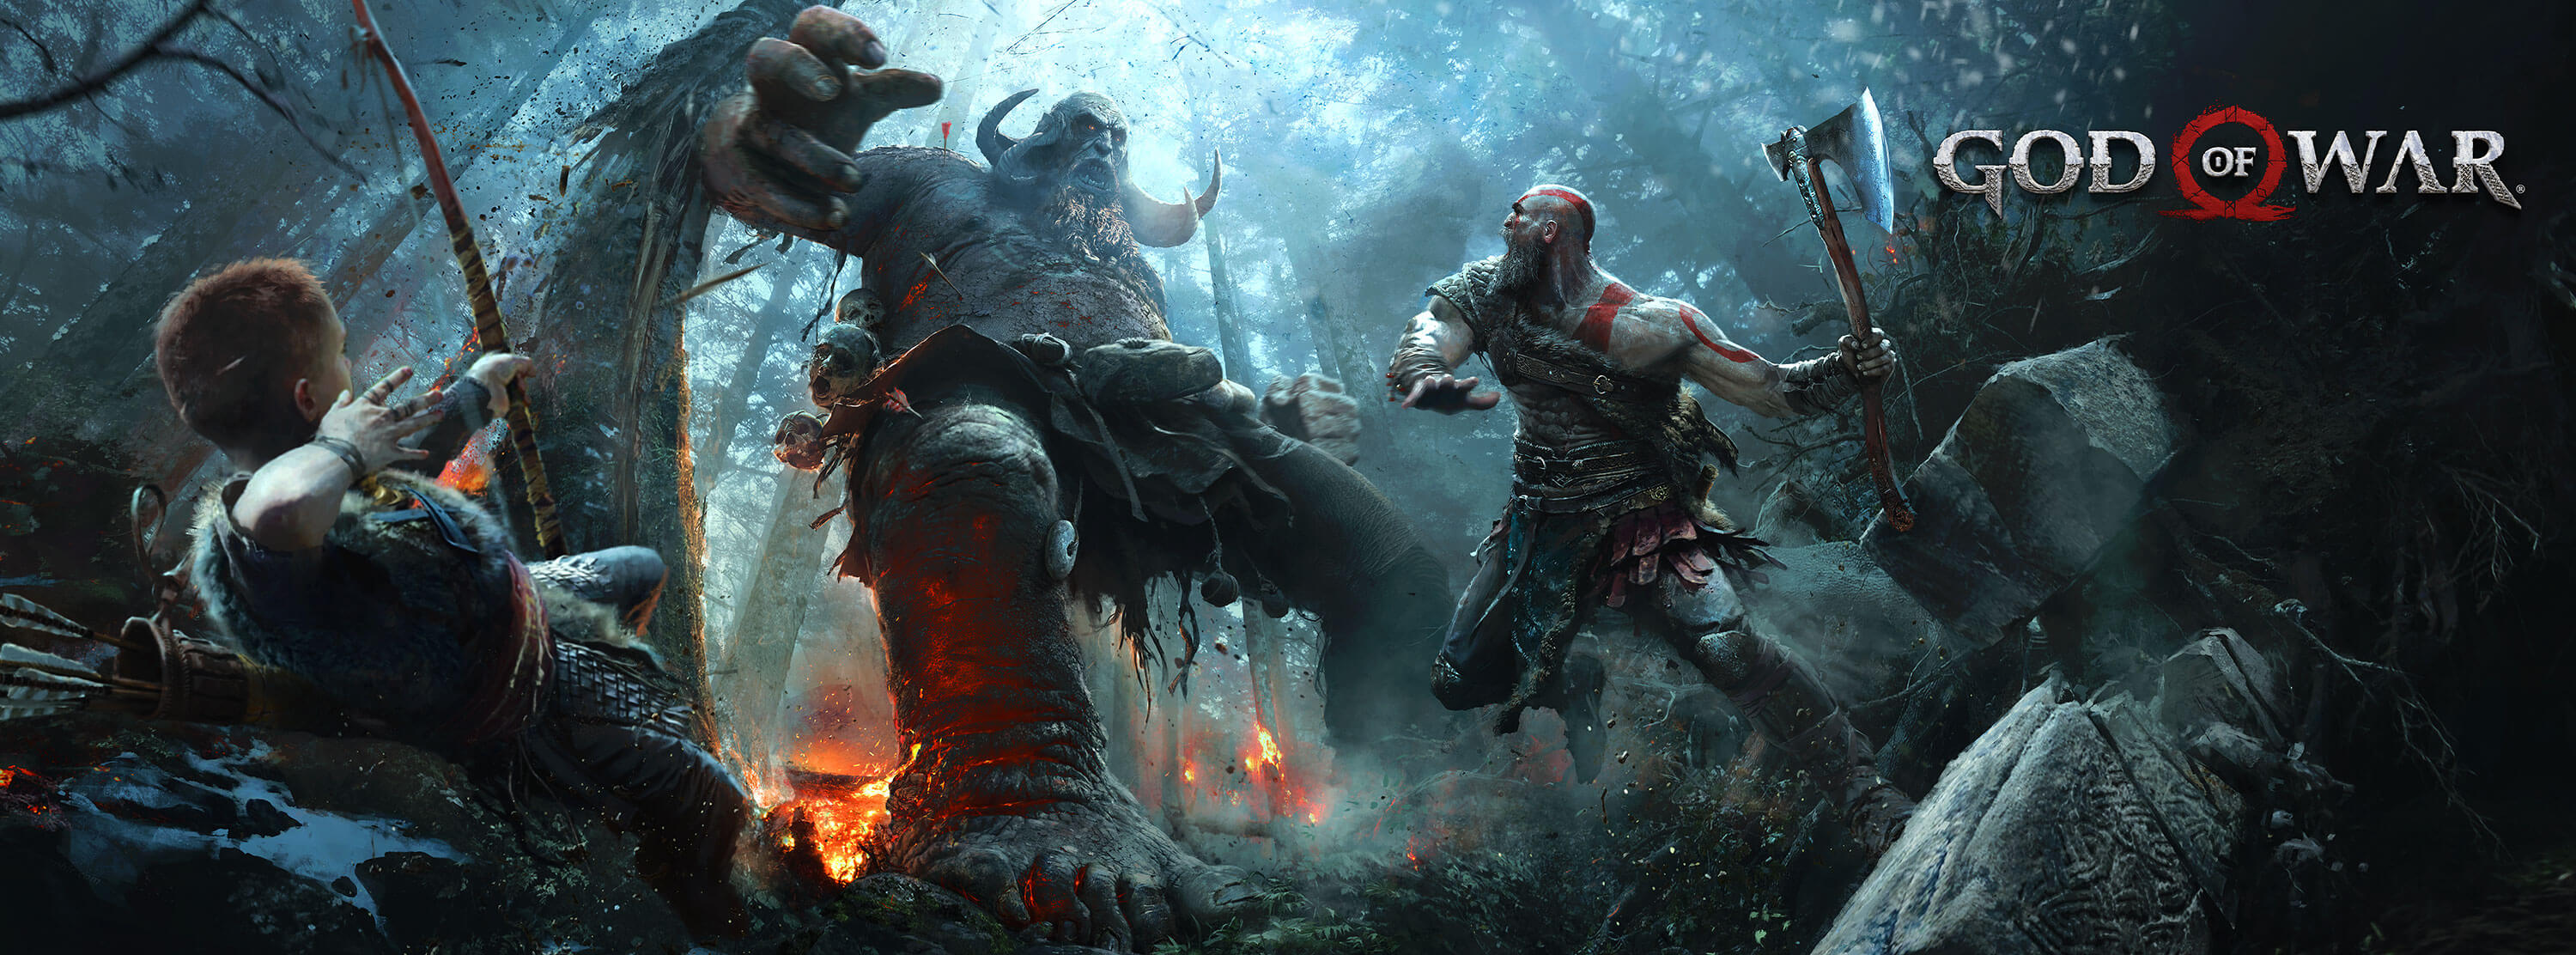 God of War key art kratos son and giant